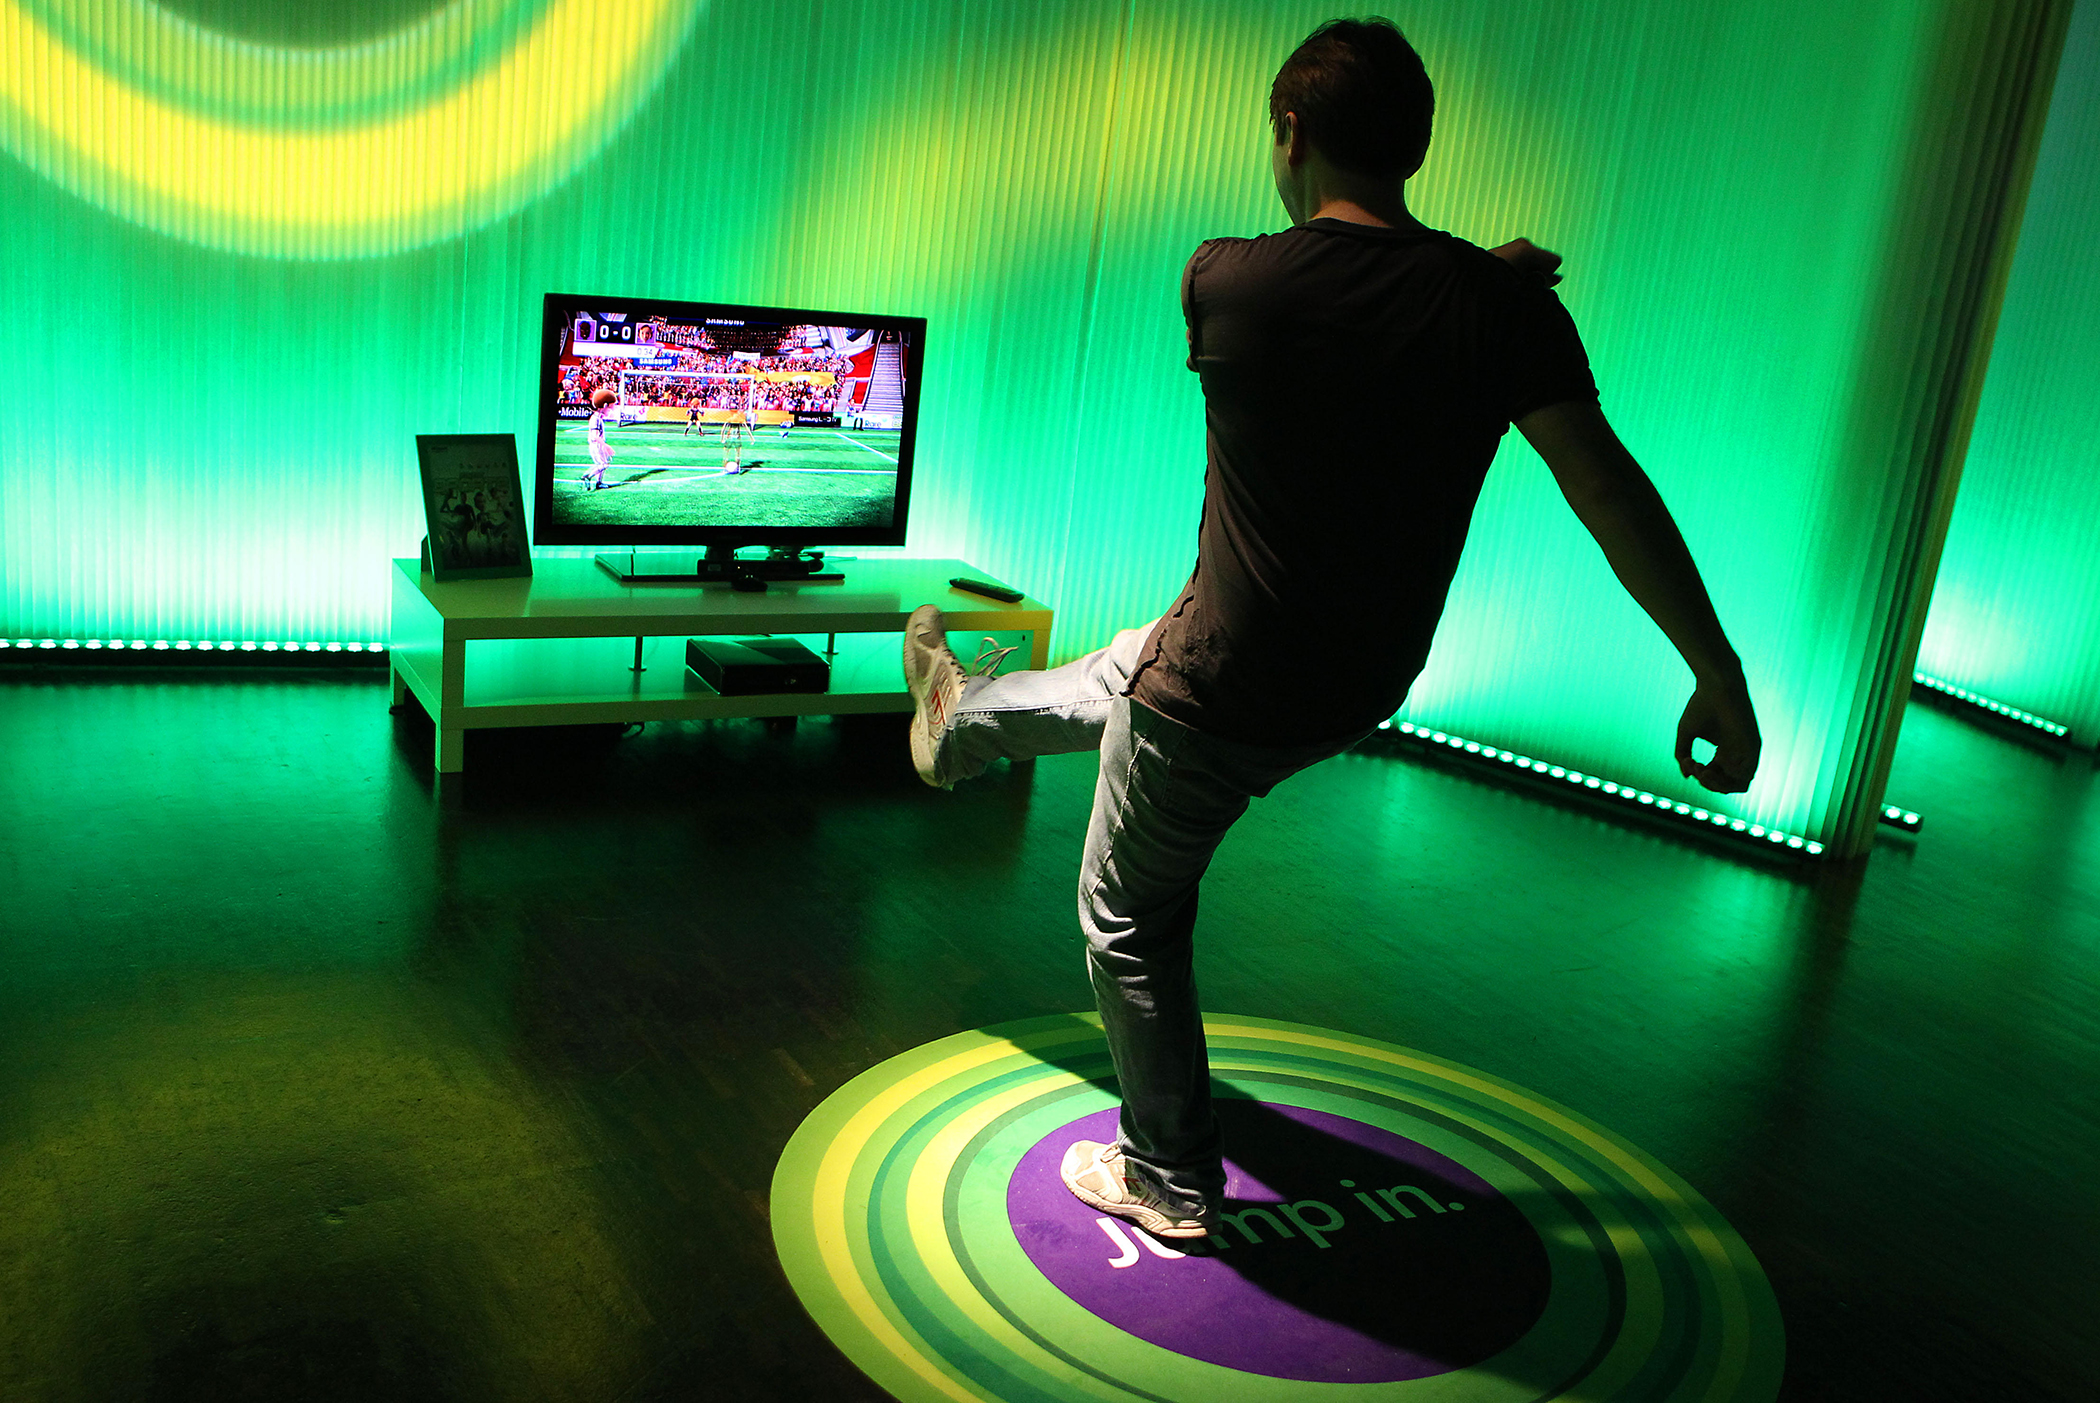 A man checks out Microsoft's new Xbox 360 equipped with 'Kinect' kinetic controller at the Gamescom trade fair in Cologne, Germany, on August 17, 2010.